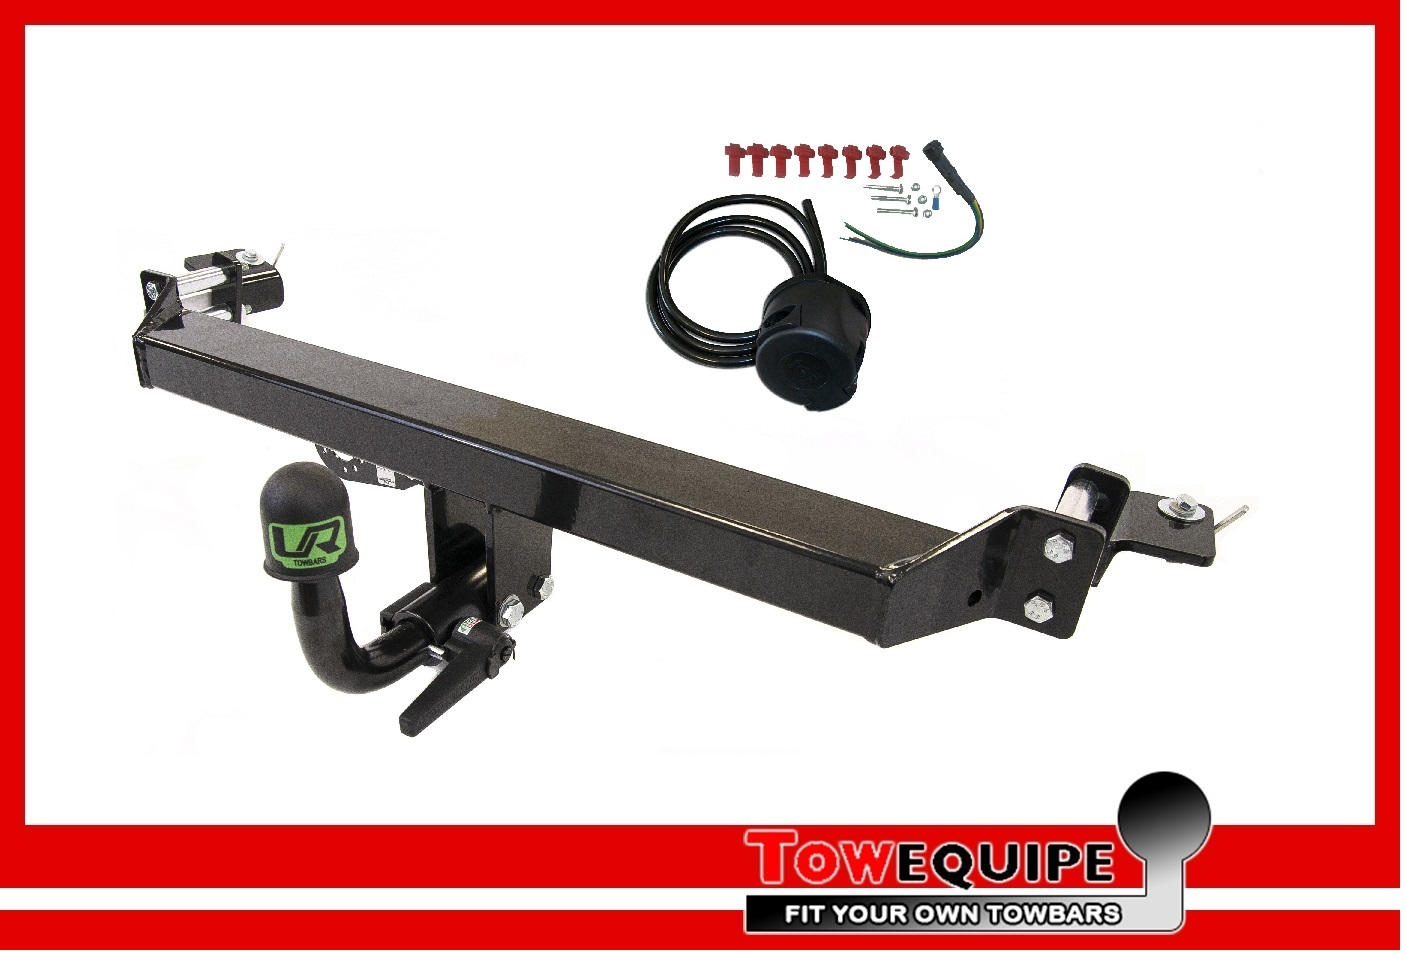 7pin Electrics for Citroën C4 Grand Picasso MPV 13 on 07047//C/_A1 Detach Towbar